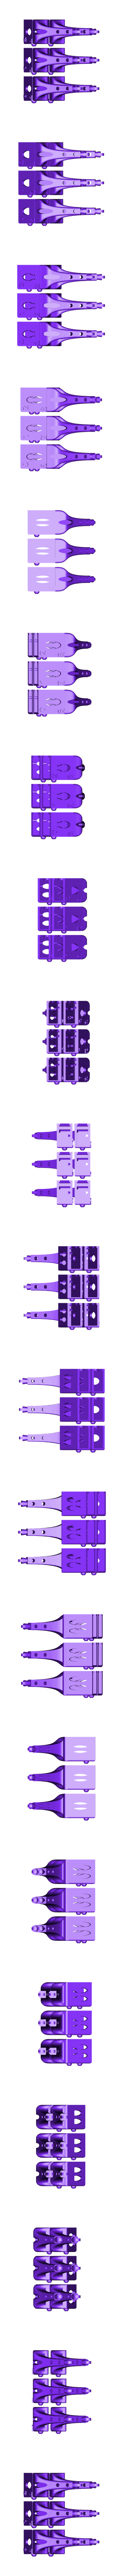 Hexapod_V1r8a_Legs_All.stl Download free STL file Vorpal Combat Hexapod Robot • 3D printable template, pend